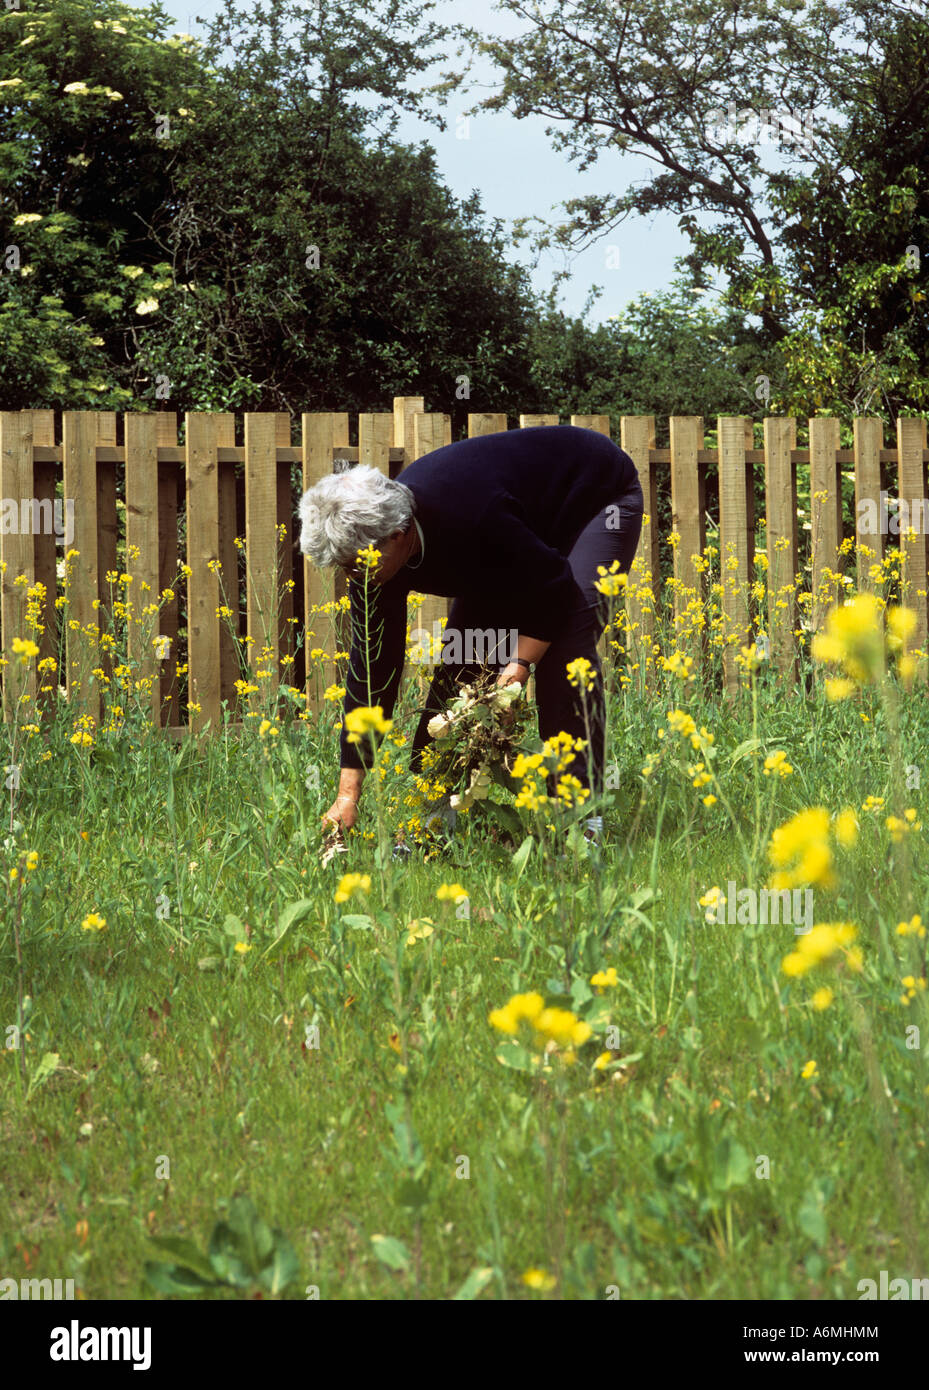 Garden weeds uk stock photos garden weeds uk stock images alamy weeding a new lawn senior woman bending over pulling plants out of ground in garden in mightylinksfo